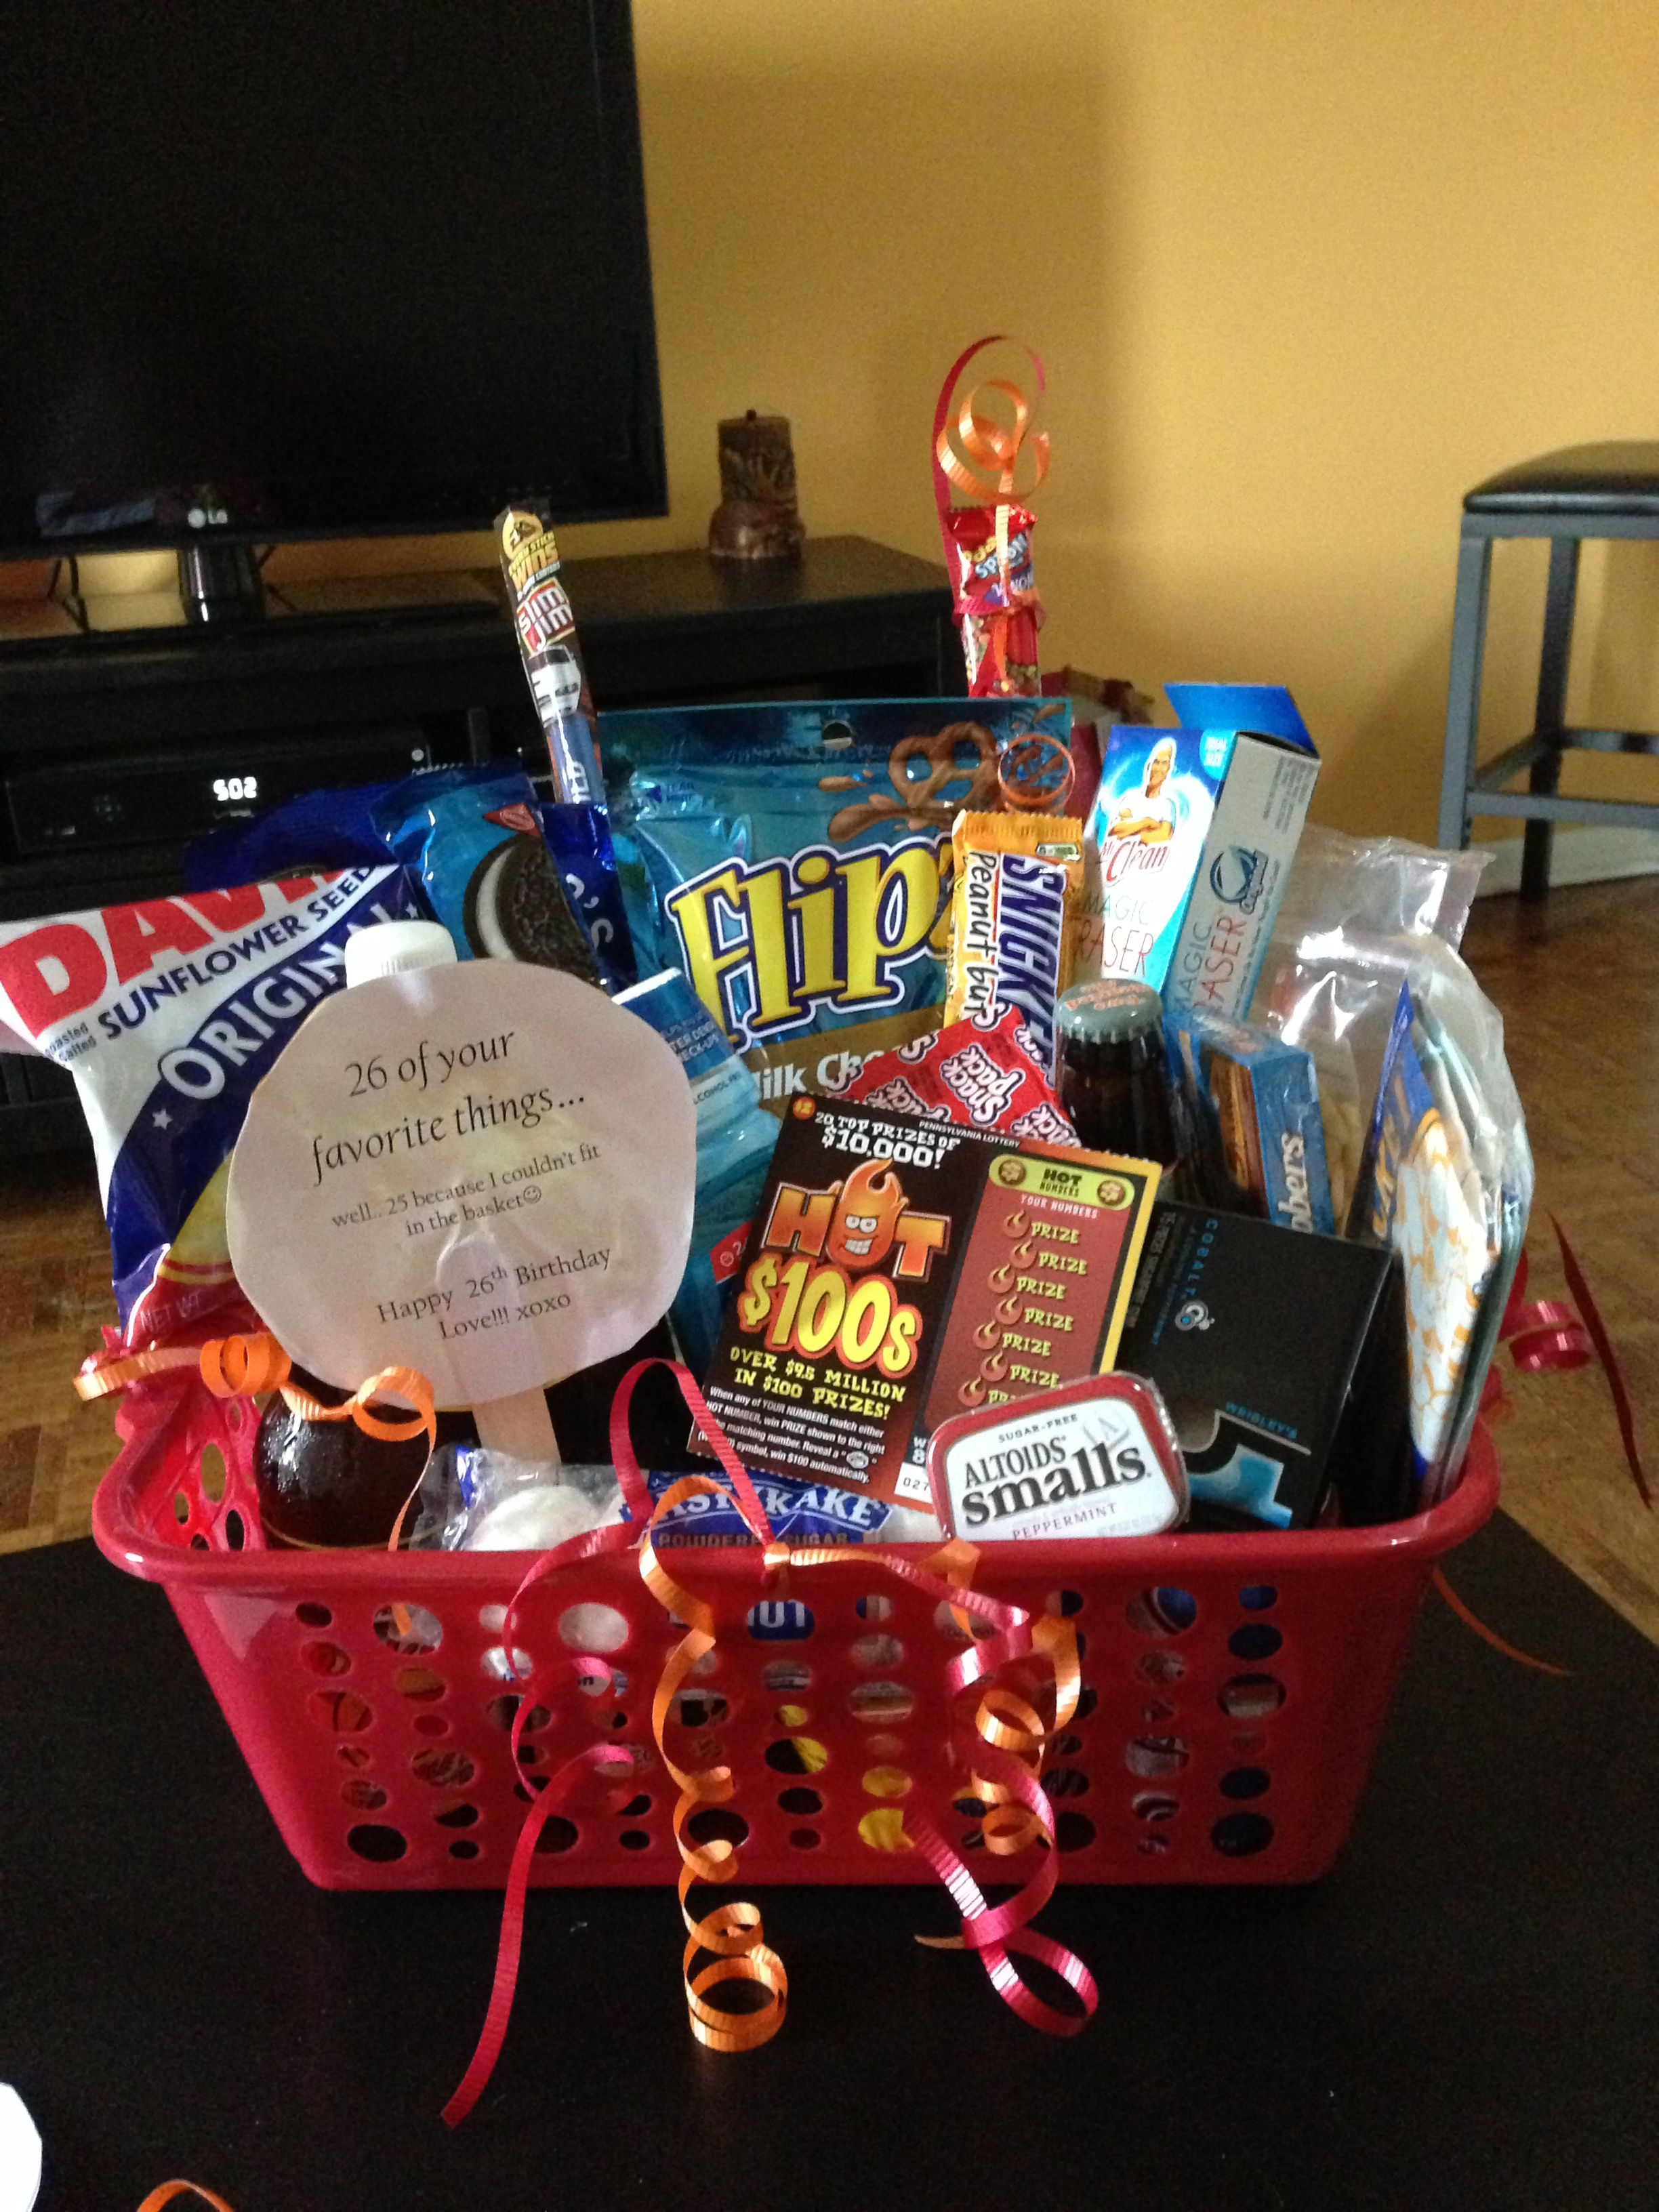 87b2d26da32e Boyfriend birthday basket! 26 of his favorite things for his 26th ...